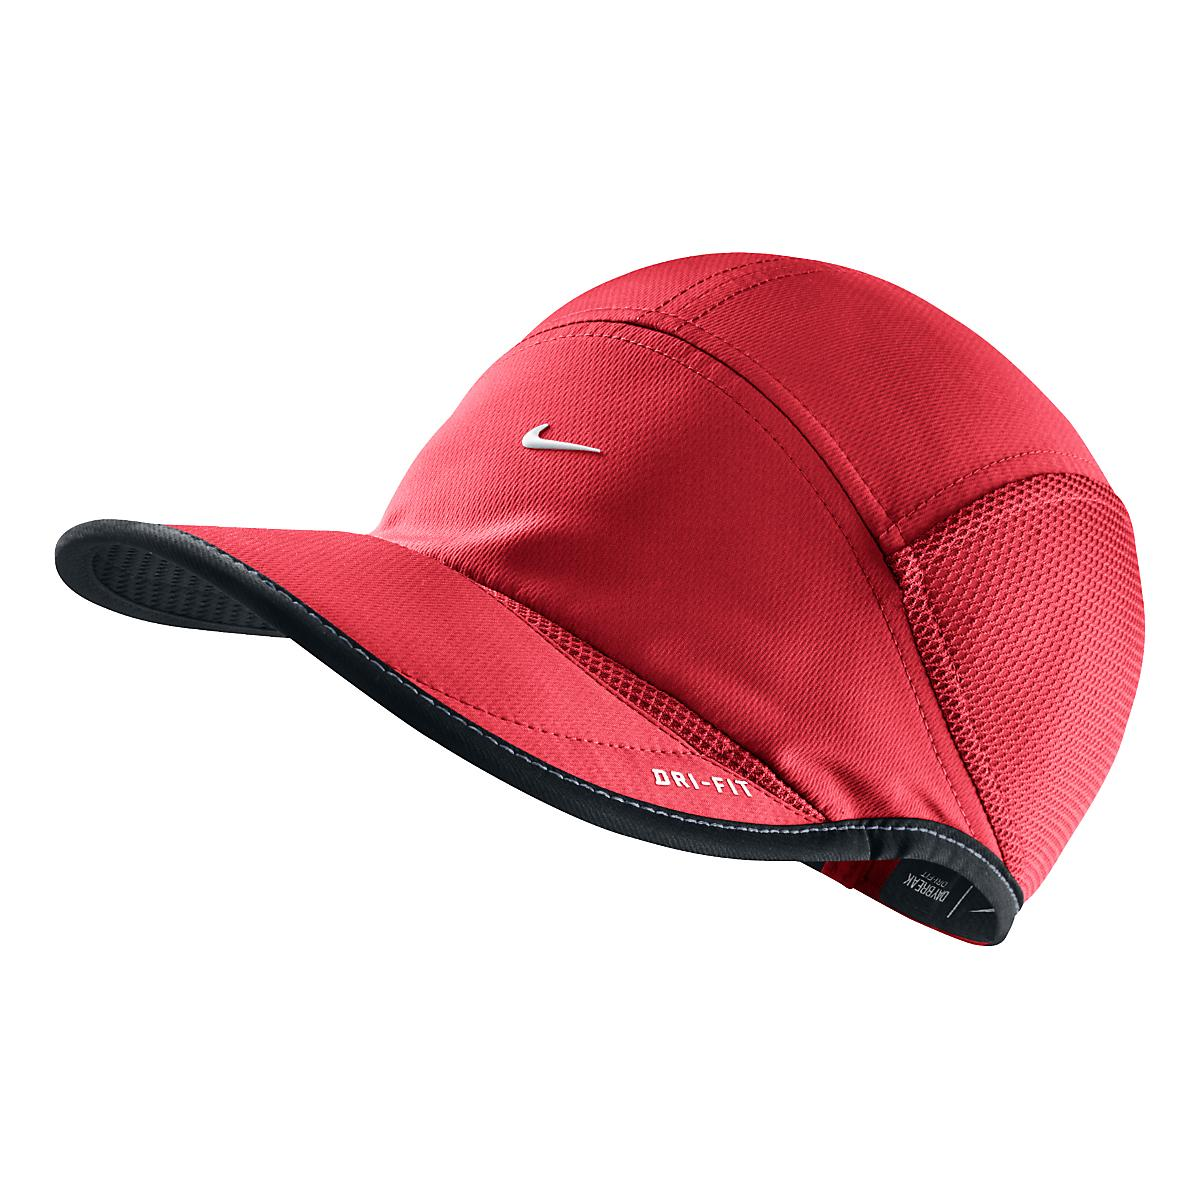 77c223bcddb Mens Nike Daybreak Cap Headwear at Road Runner Sports